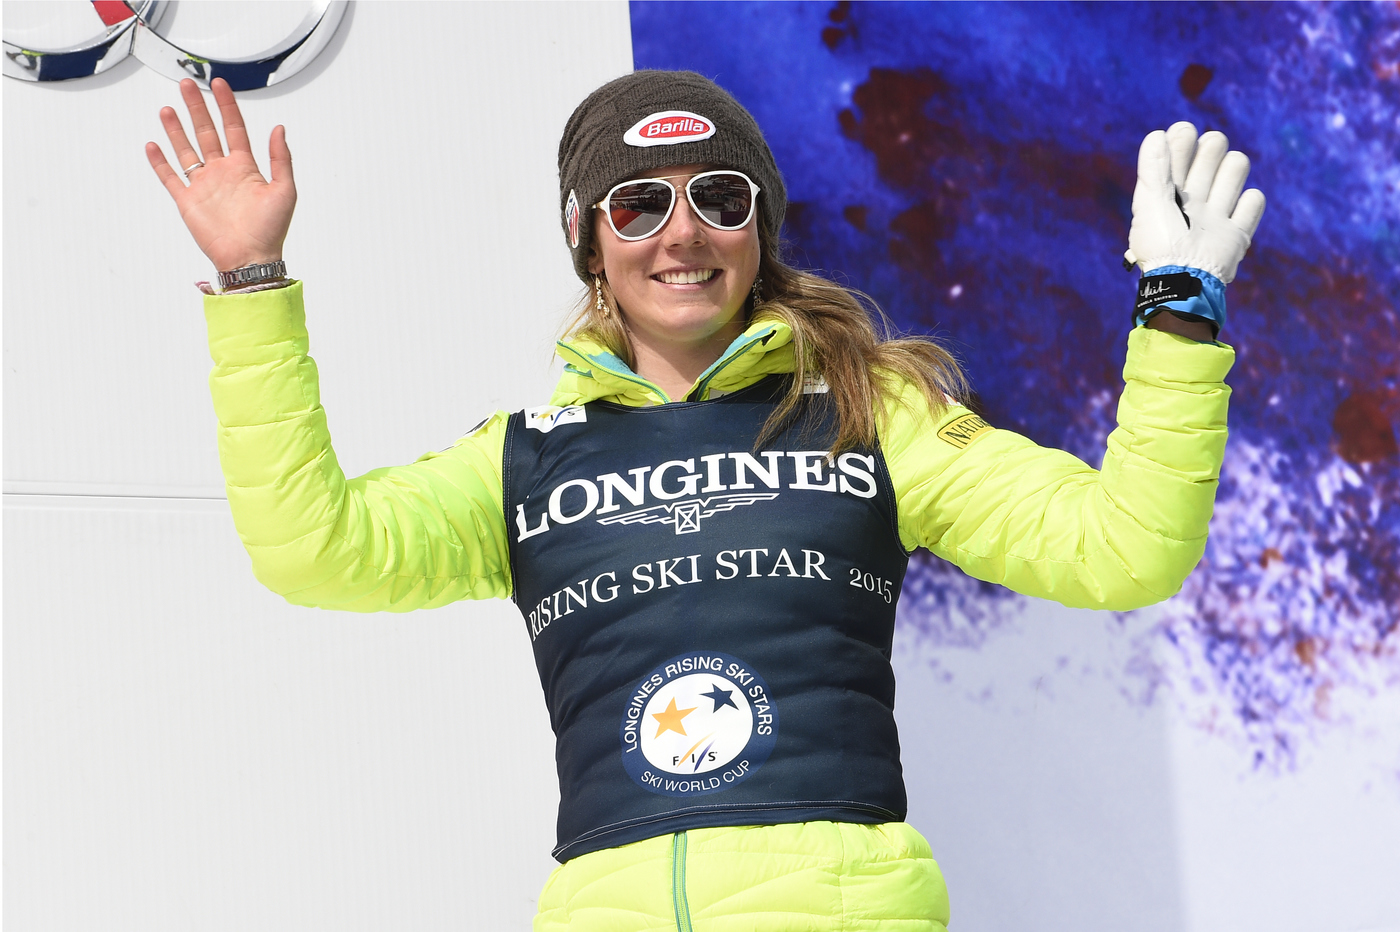 Longines Alpine Skiing Event: Longines awards the Longines Rising Ski Stars Prize to Mikaela Shiffrin and Henrik Kristoffersen 3